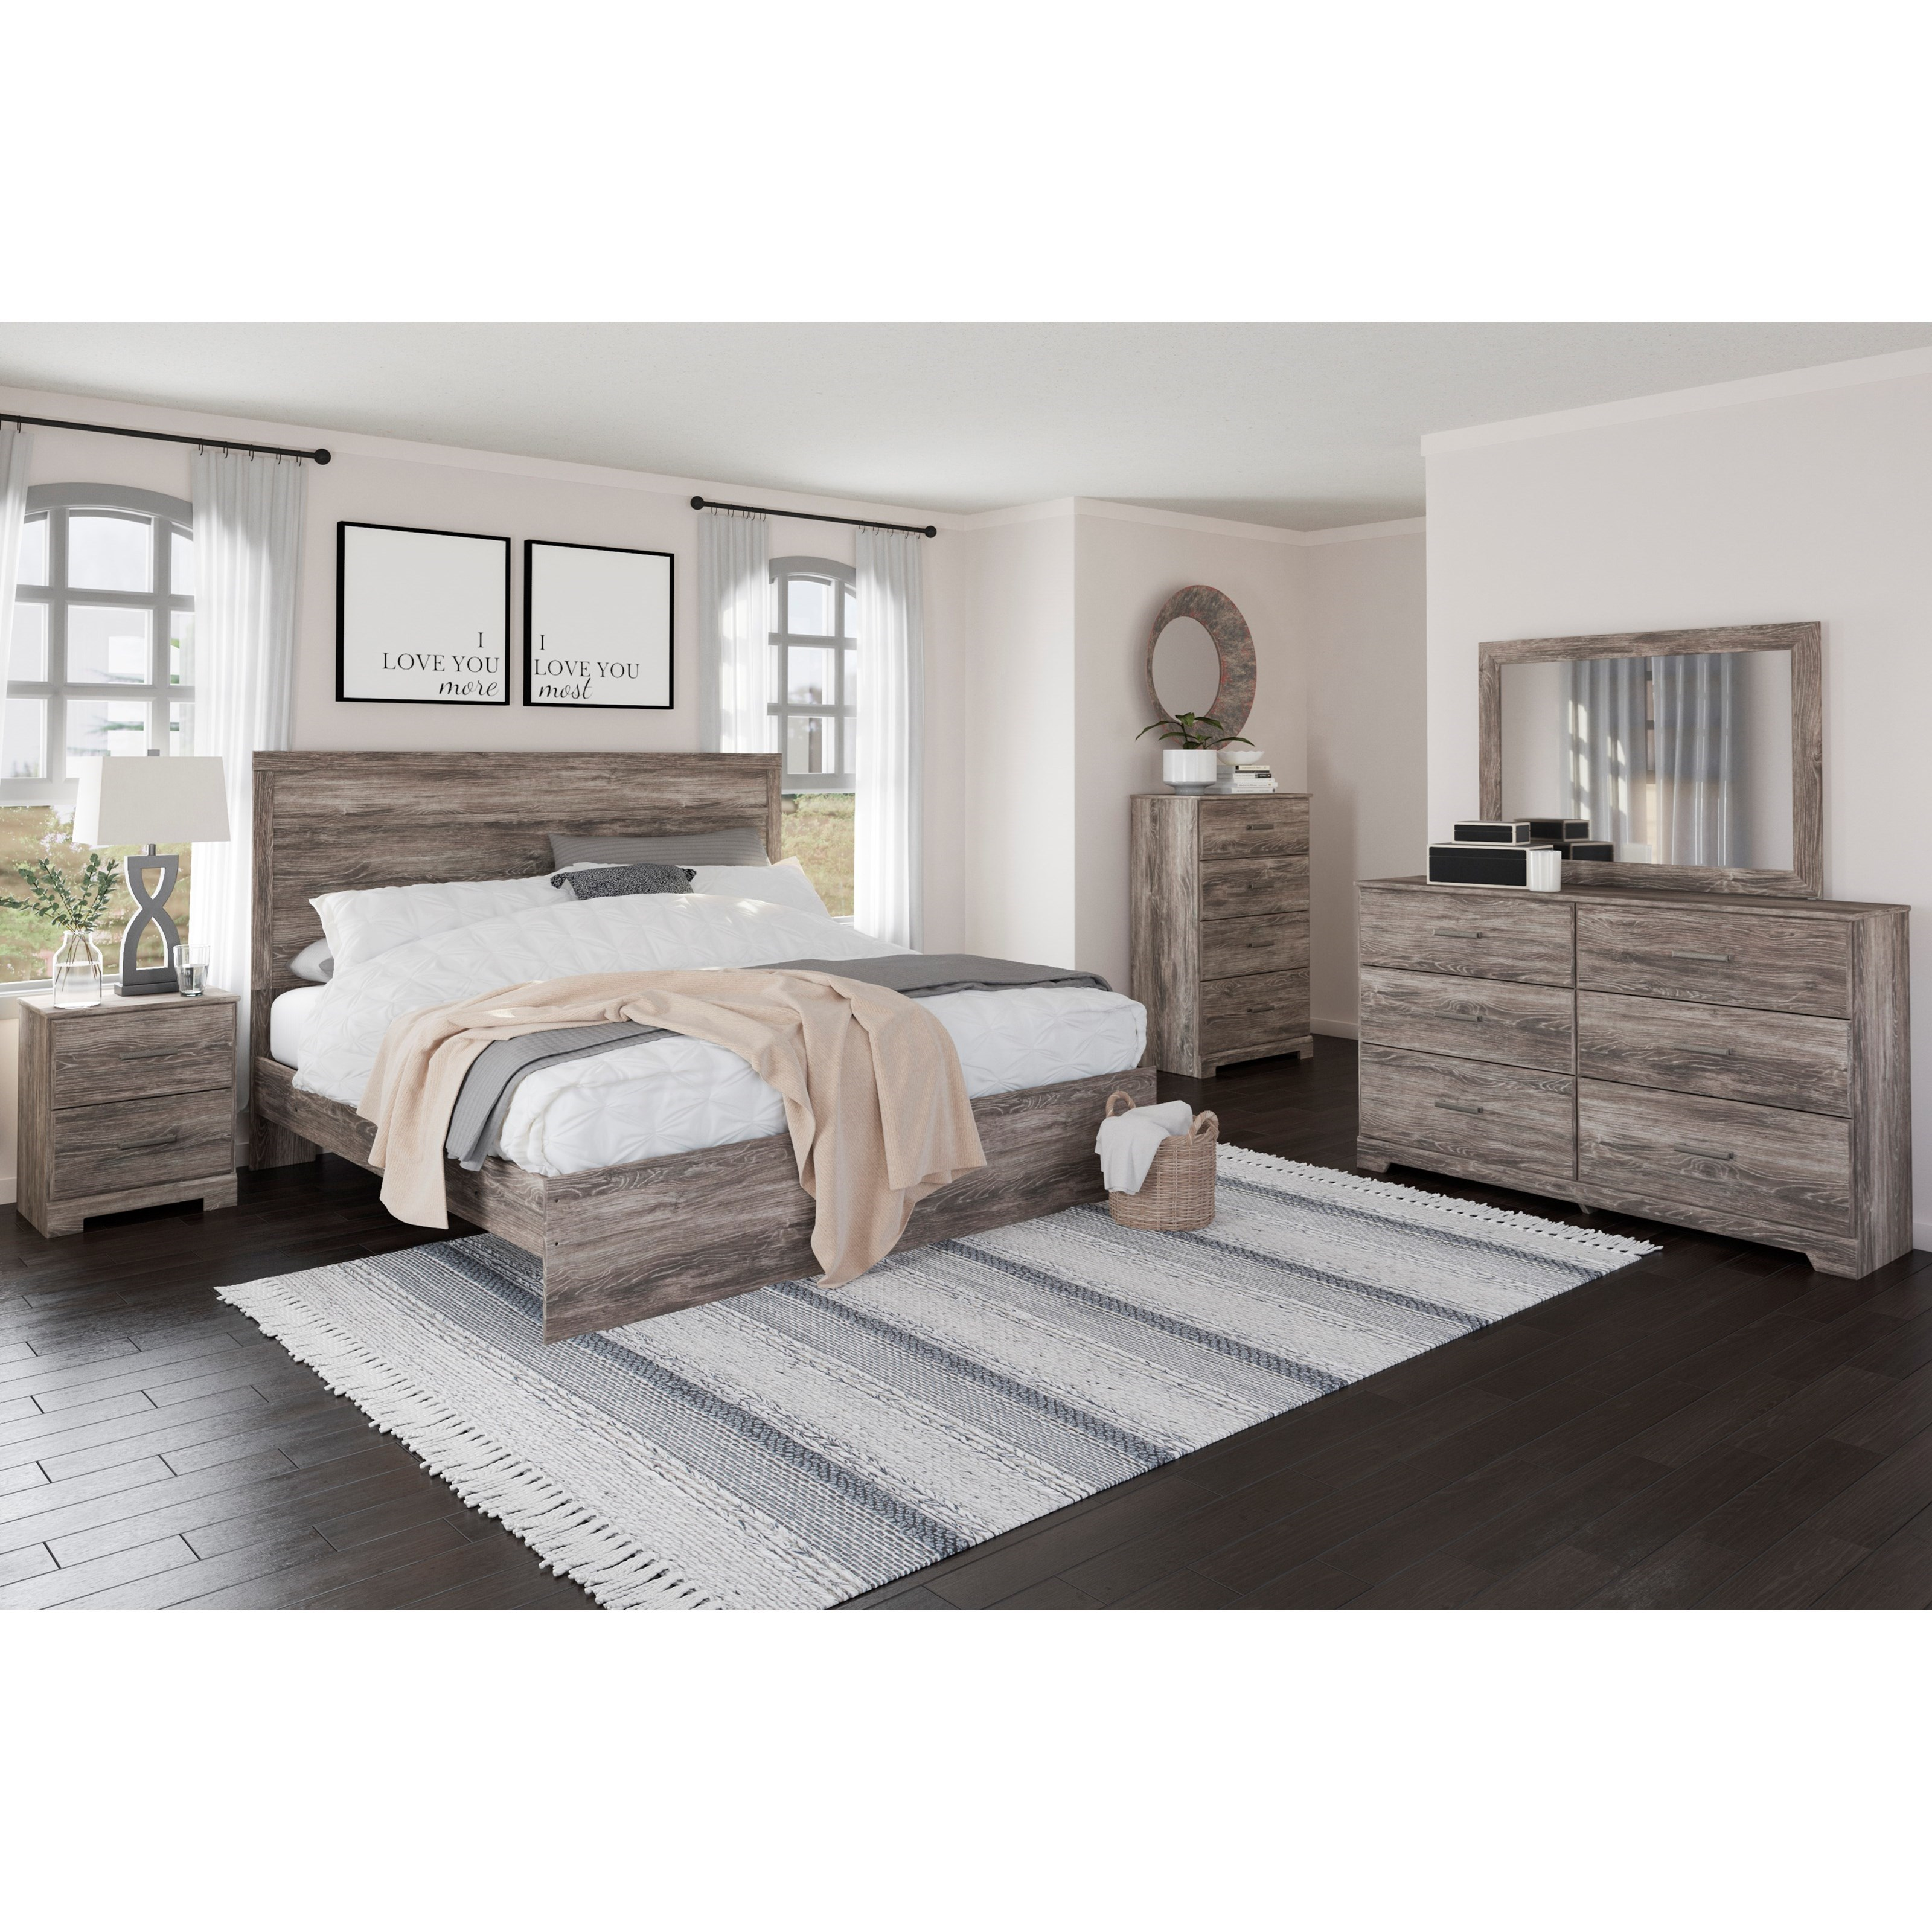 Ralinski King Bedroom Group by Signature Design by Ashley at Houston's Yuma Furniture